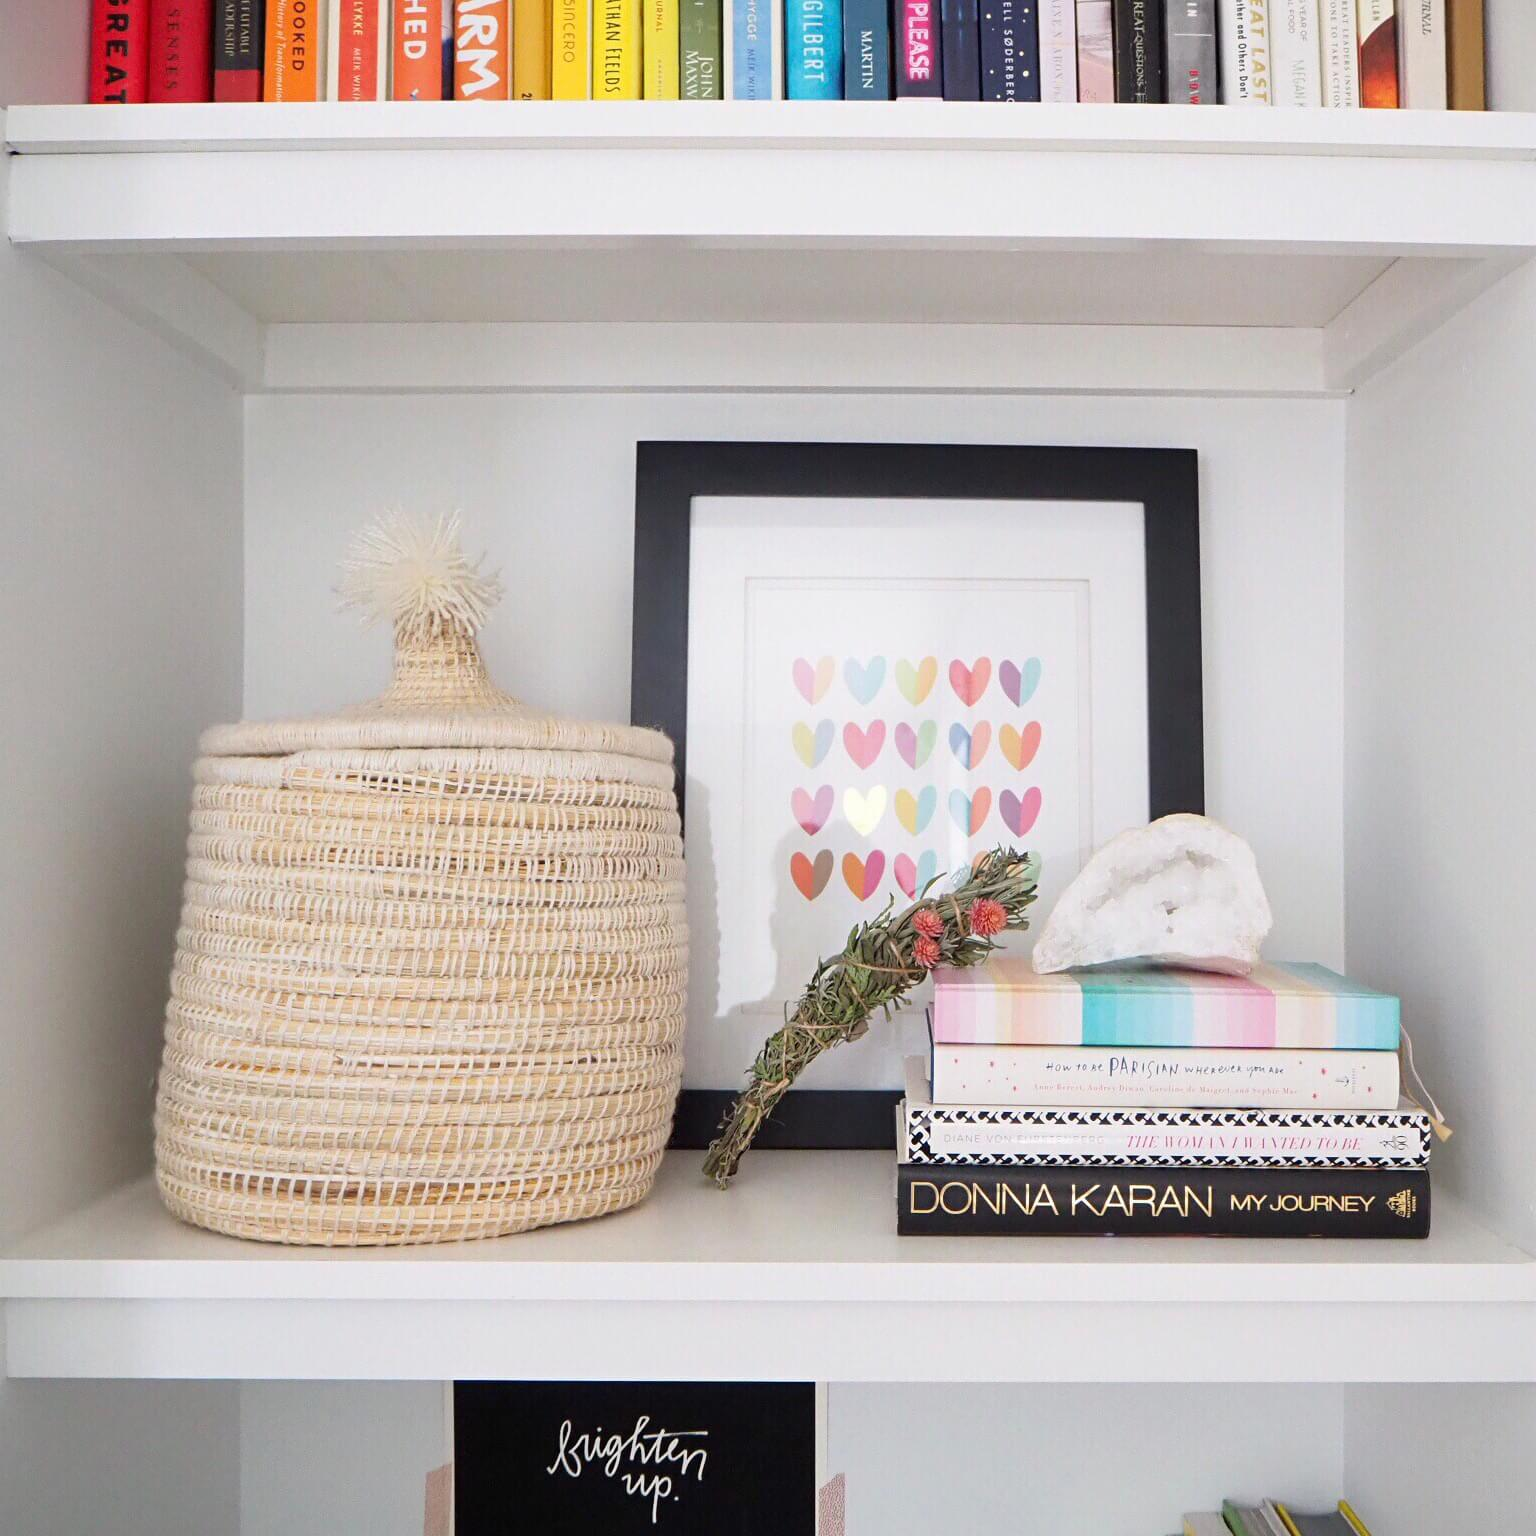 My actual bookshelf in my office. I layered up a framed print, a moroccan basket, rosemary smudge stick, some fantastic books and a personal journal, and a crystal for texture.